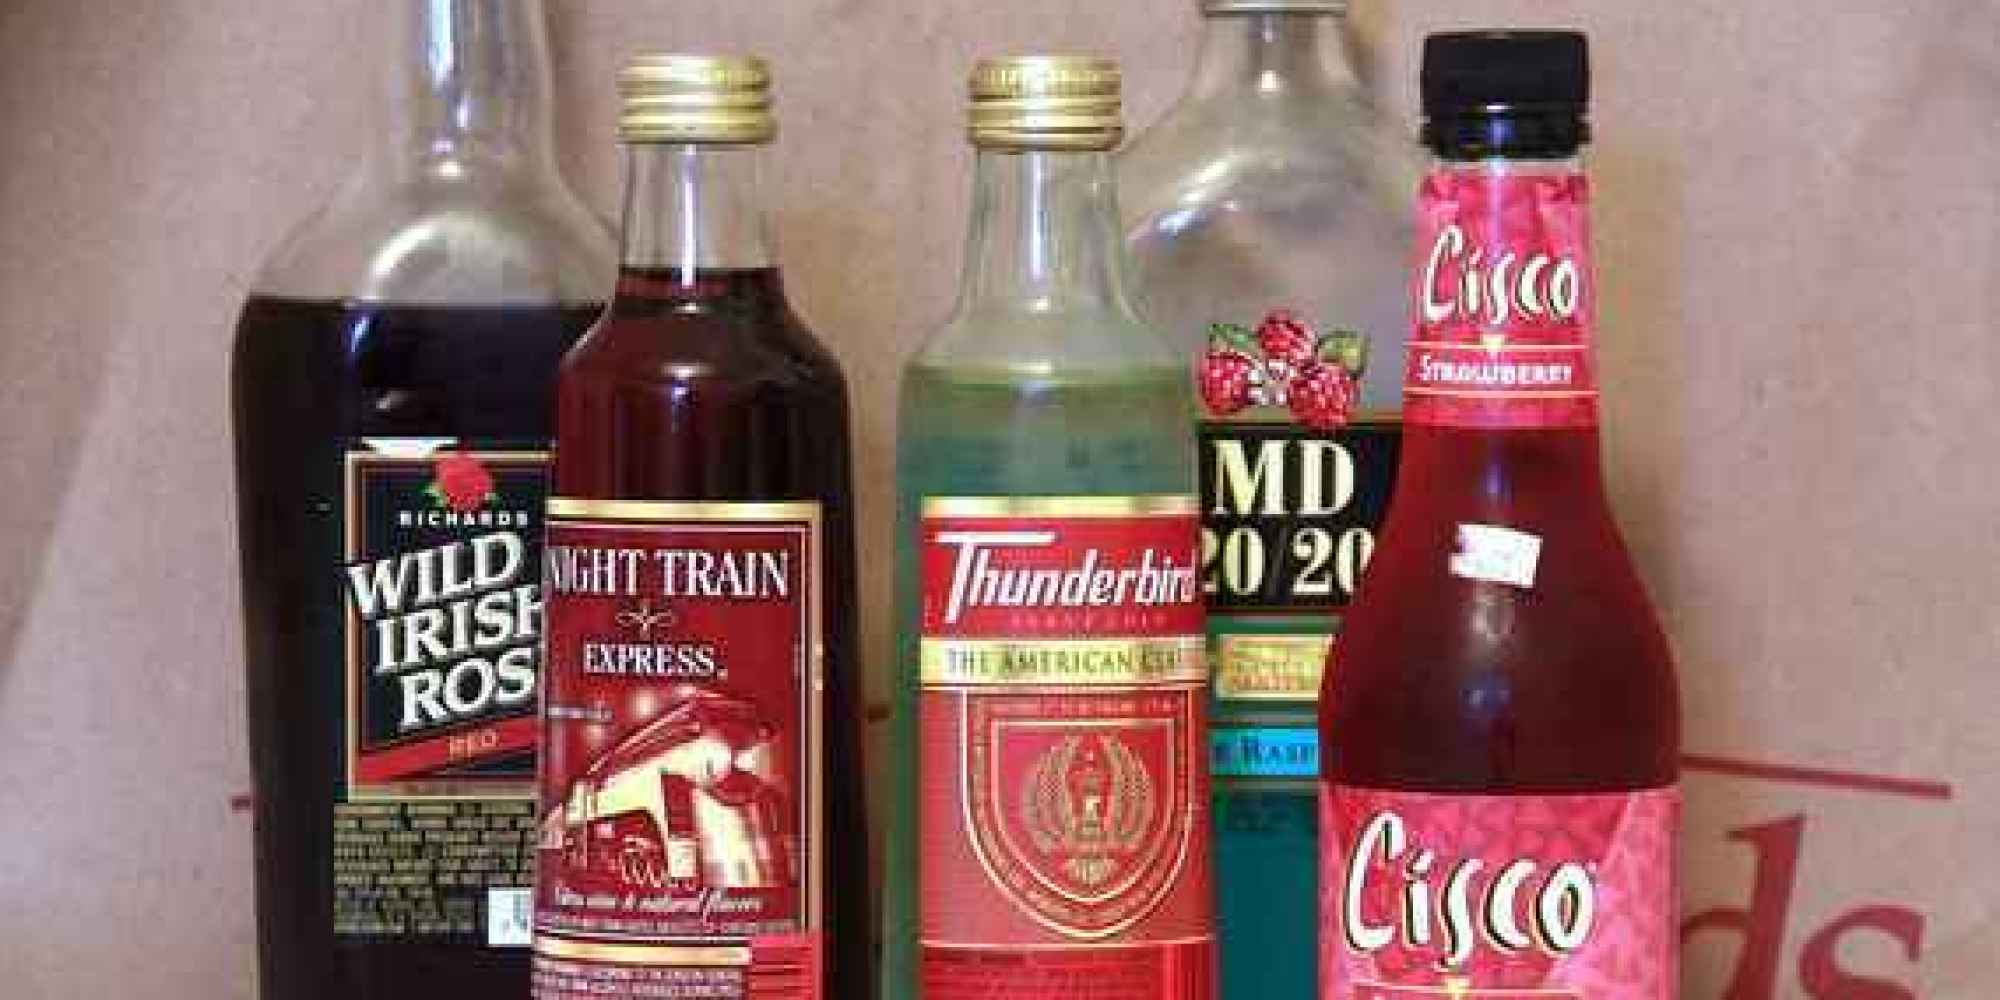 ranking the top 5 bum wines from thunderbird to mad dog